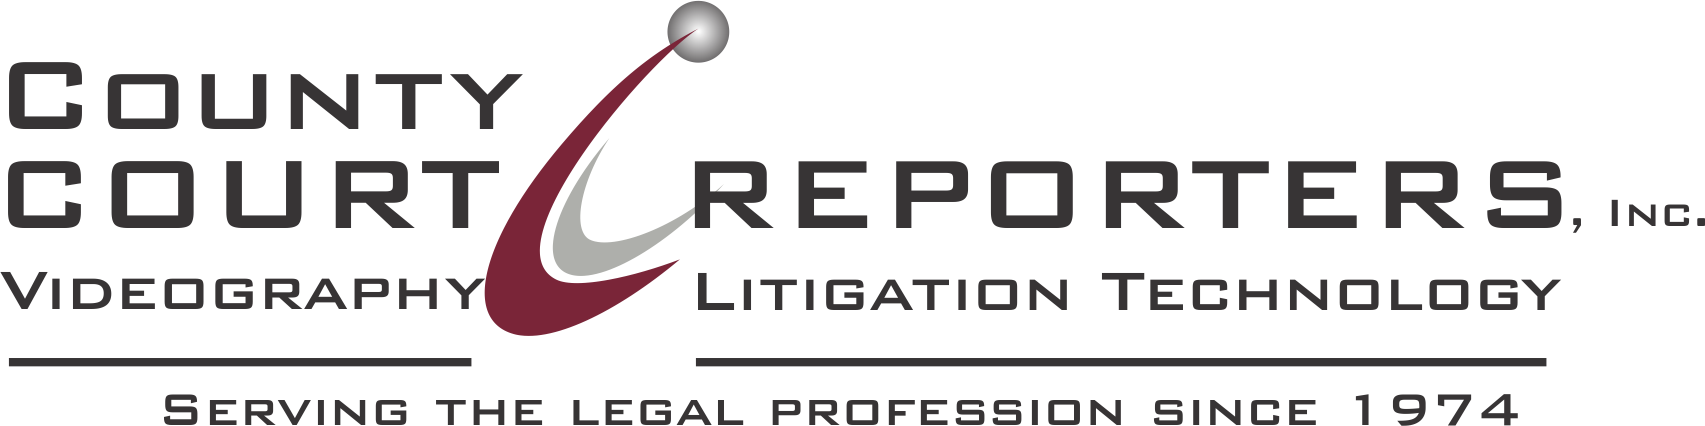 County Court Reporters Logo